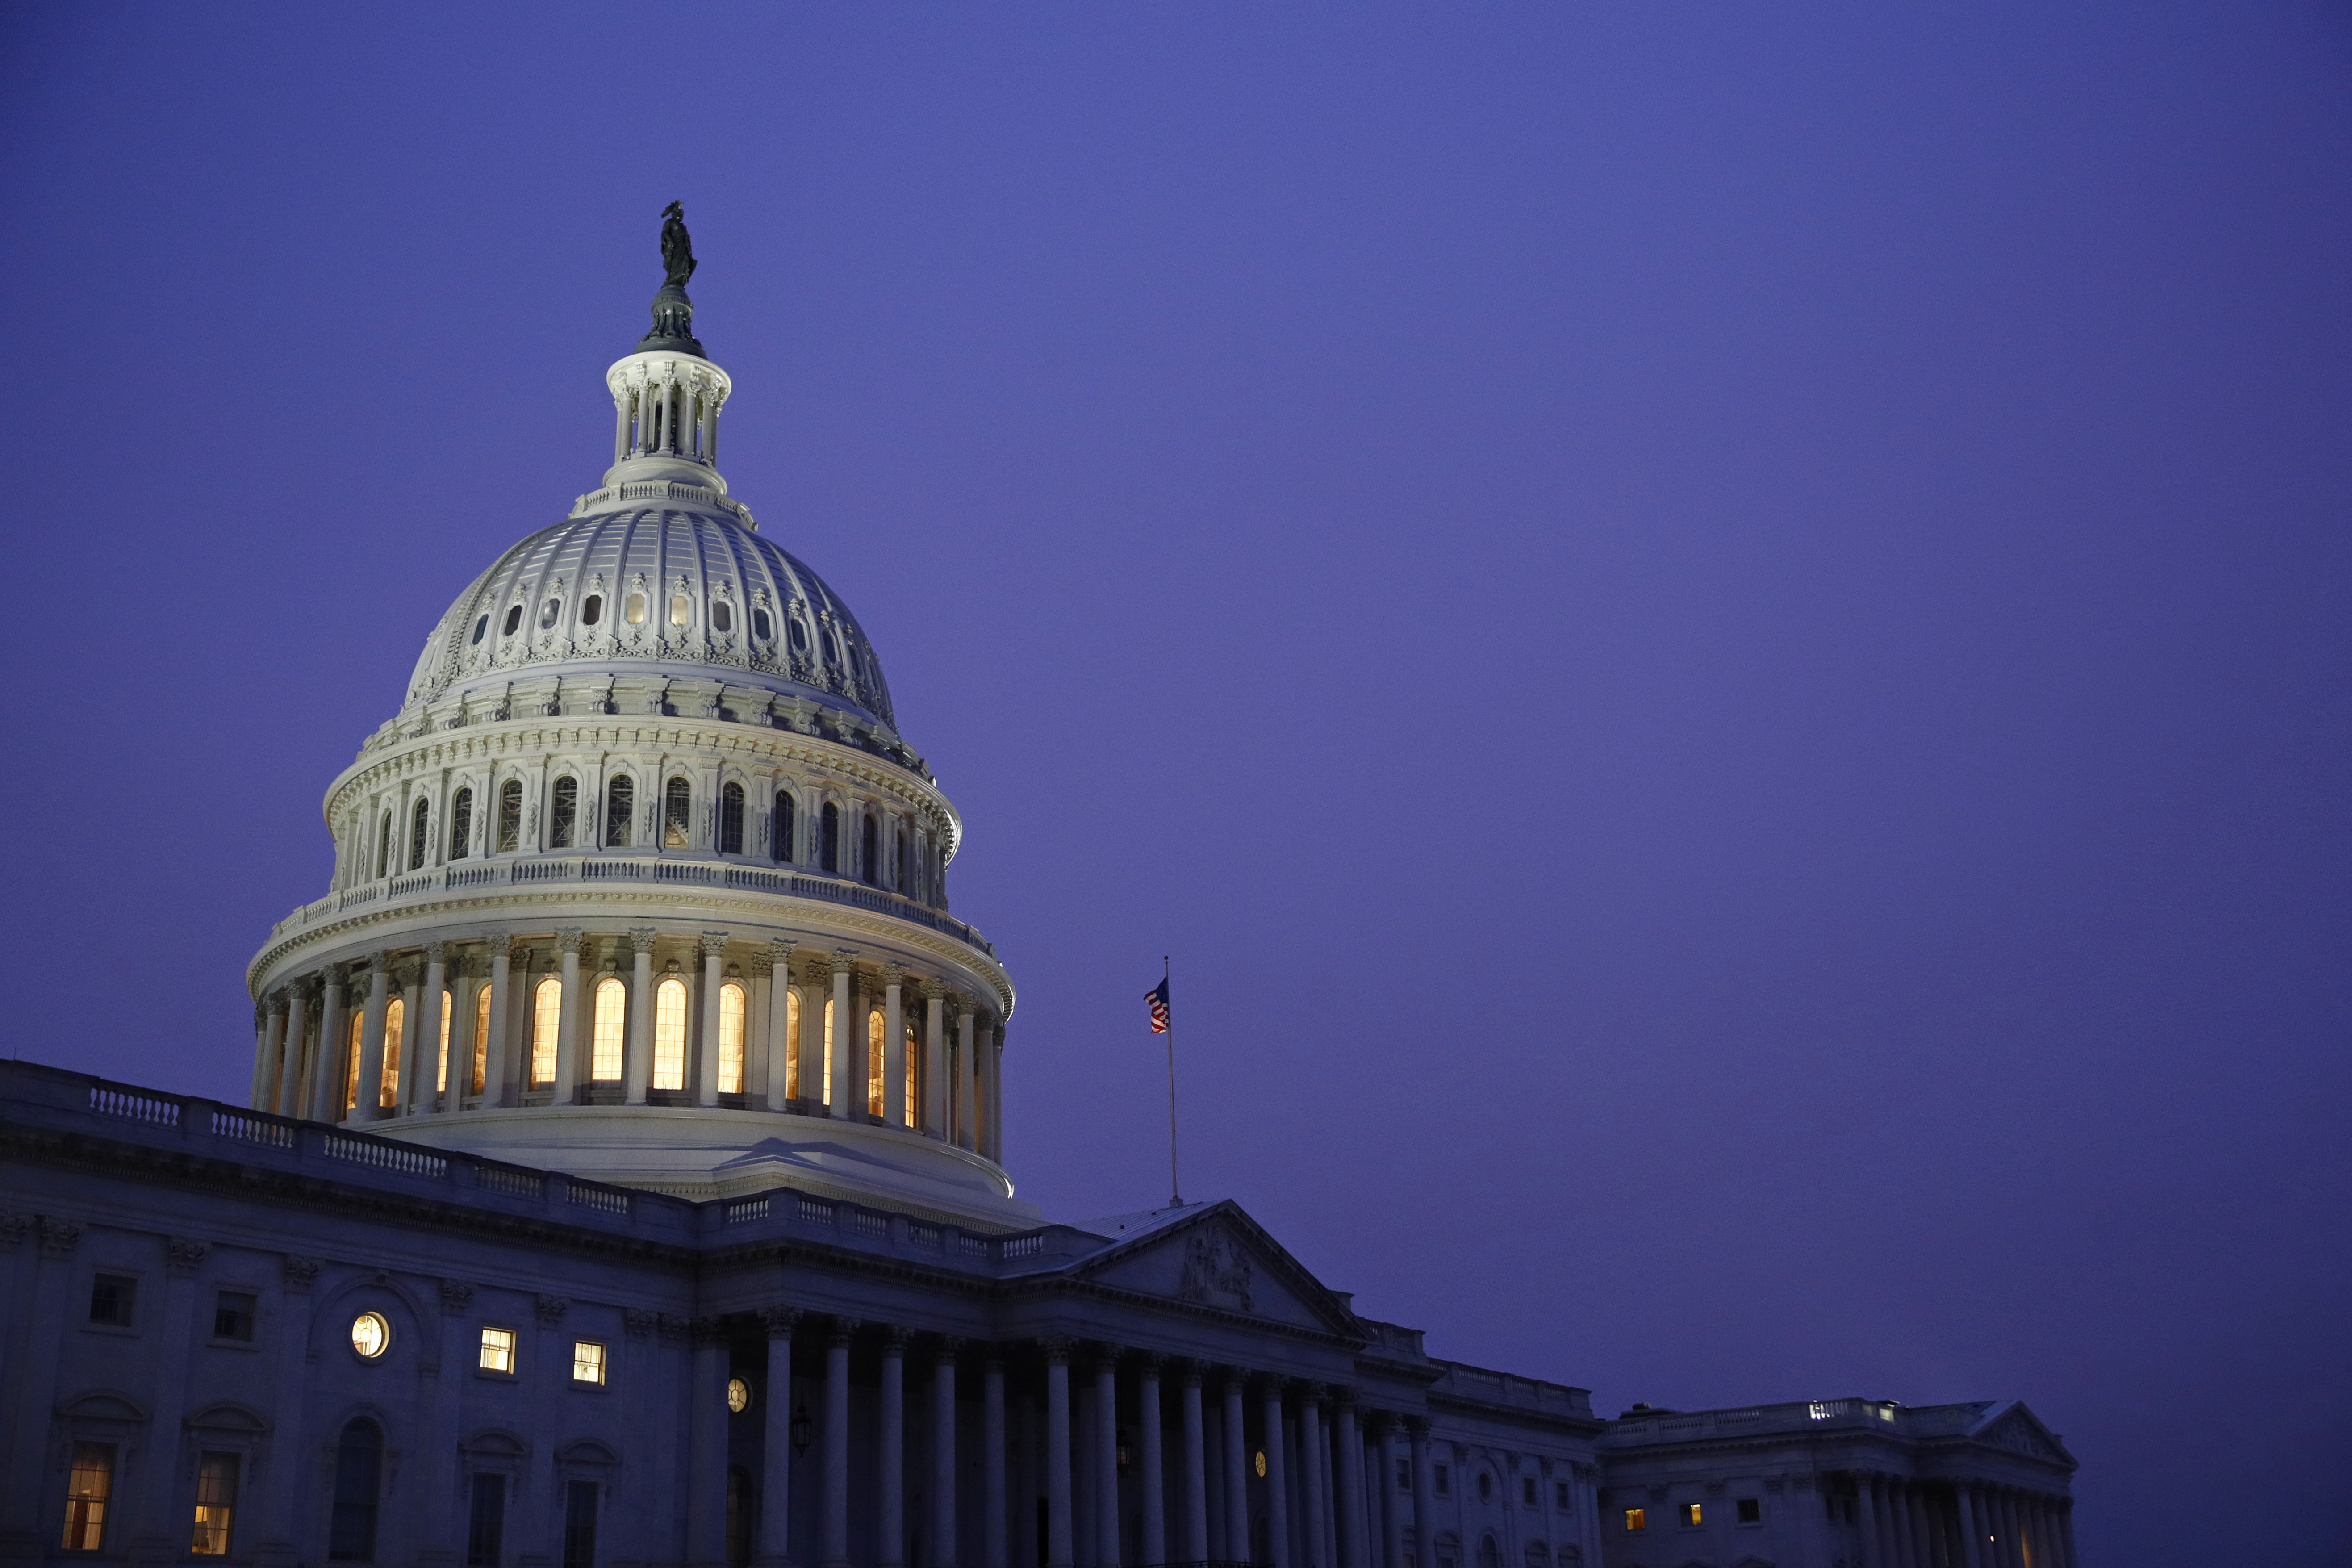 Light shines on the U.S. Capitol dome before a House Judiciary Committee markup of the articles of impeachment against President Donald Trump, Friday, Dec. 13, 2019, on Capitol Hill in Washington. Trump impeachment goes to full House after Judiciary panel approves charges of abuse of power, obstruction of Congress. (AP Photo/Patrick Semansky)